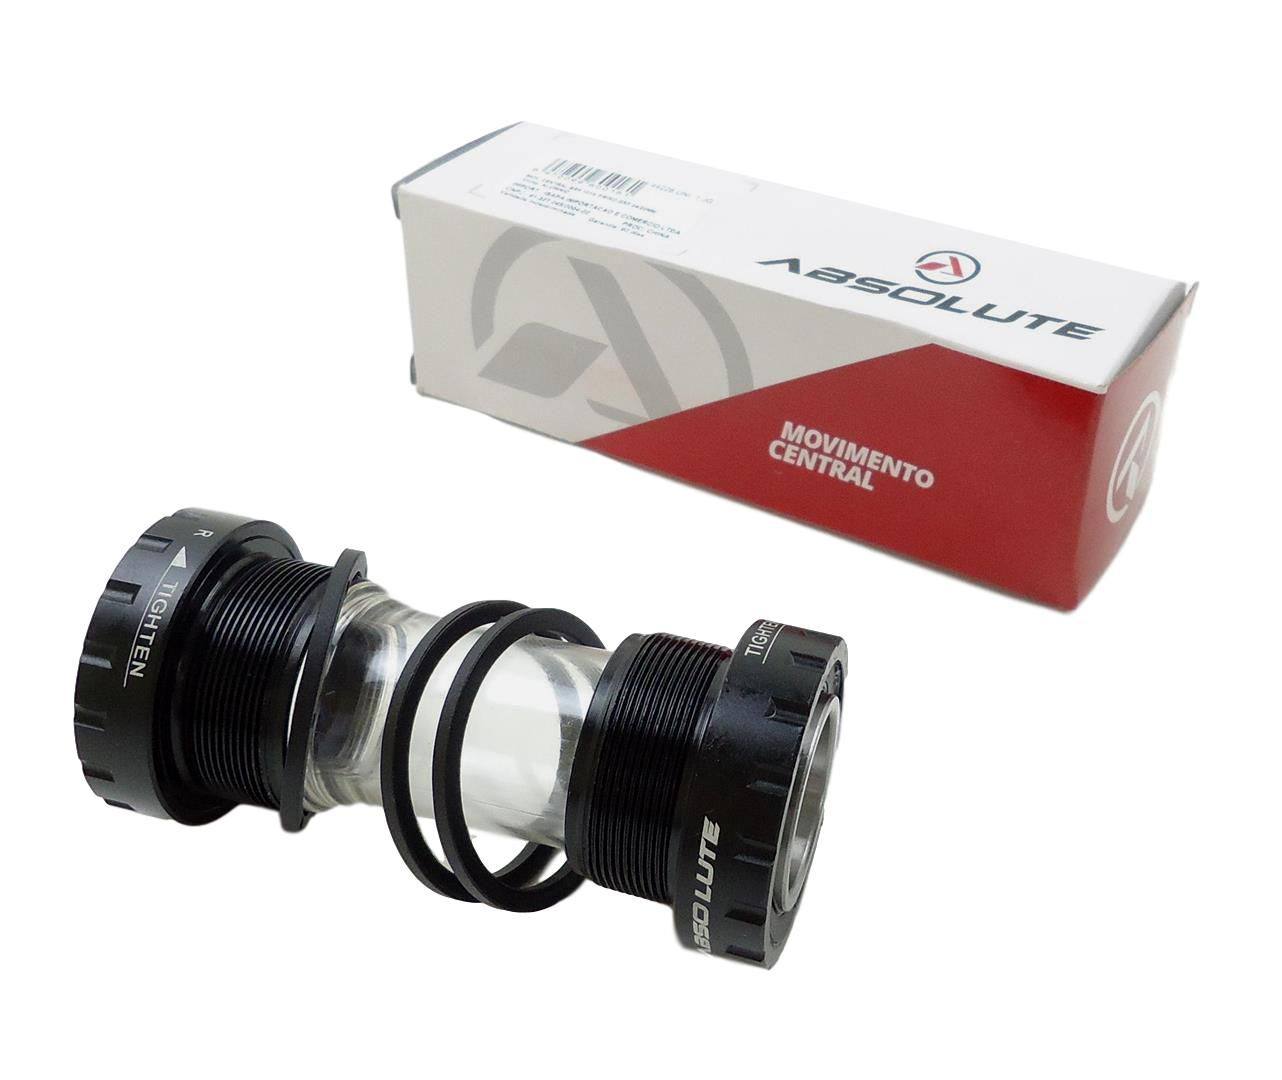 Movimento Central Absolute MTB BSA Rosca Inglesa 68 73mm para Sram GXP Truvativ Eixo 24/22mm